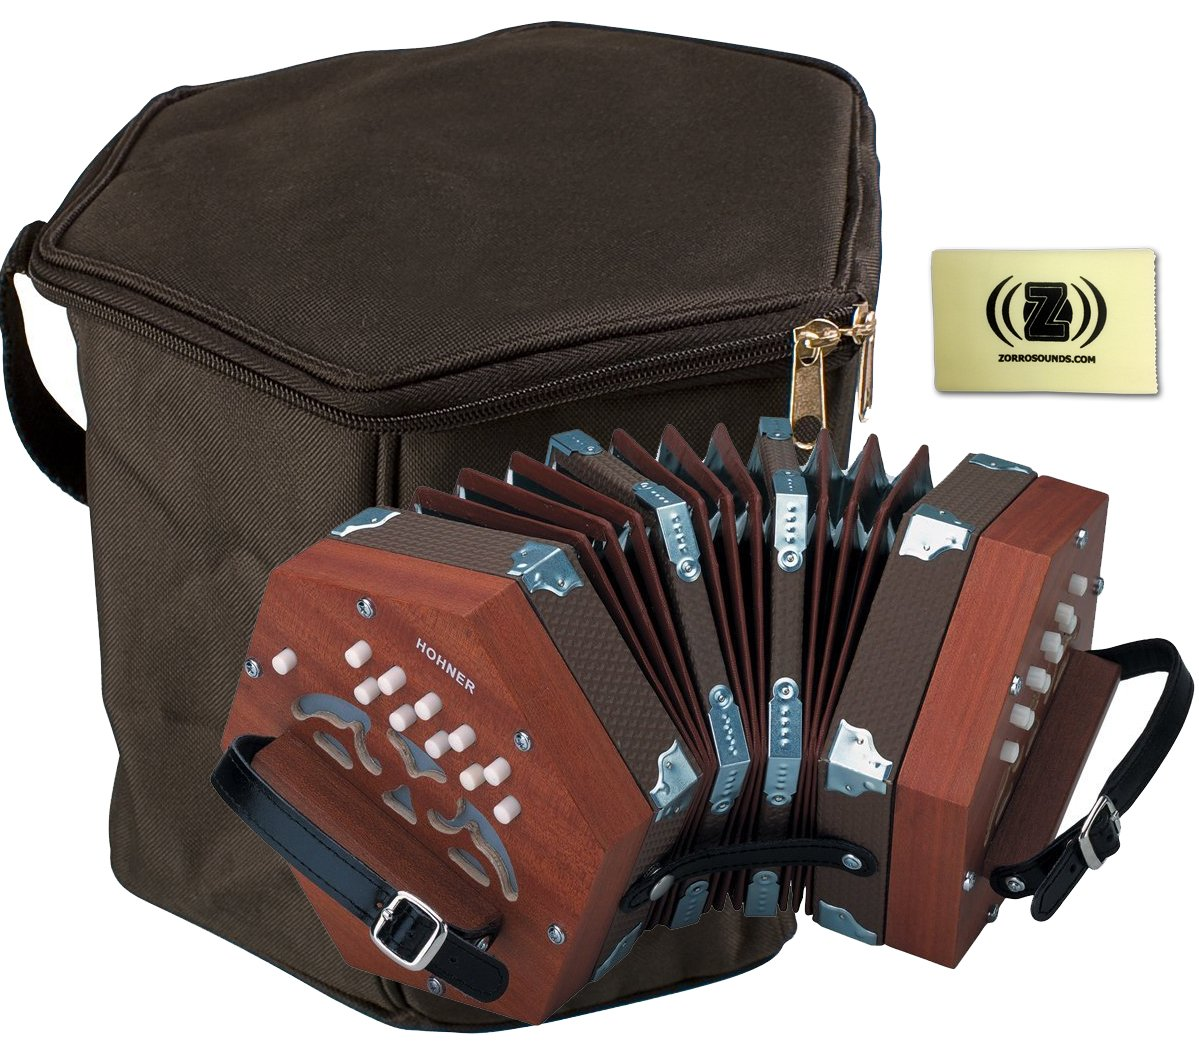 Hohner D40 20-Key Concertina Bundle with Hohner CONG Concertina Gig Bag and Zorro Sounds Polishing Cloth